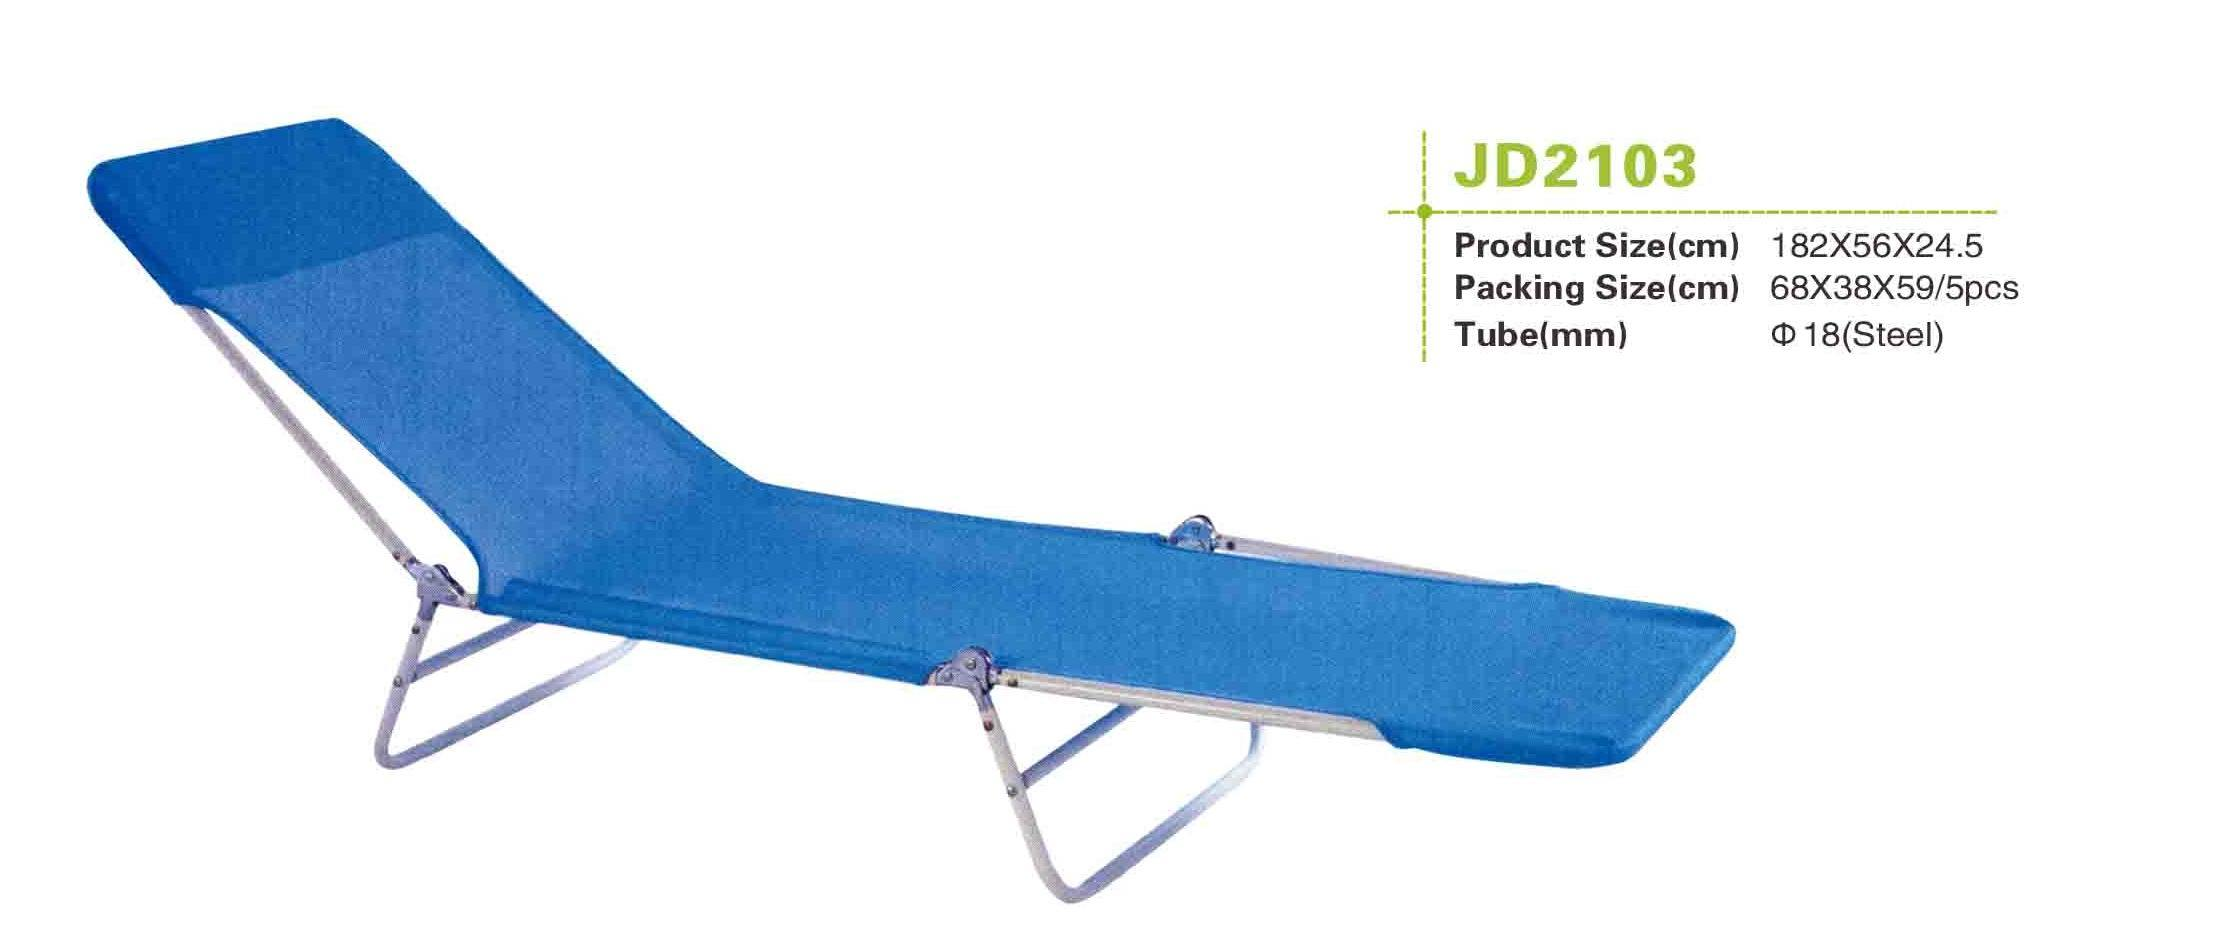 China Beach Lounge Chair JD2103 China Beach Chair Outdoor Furniture